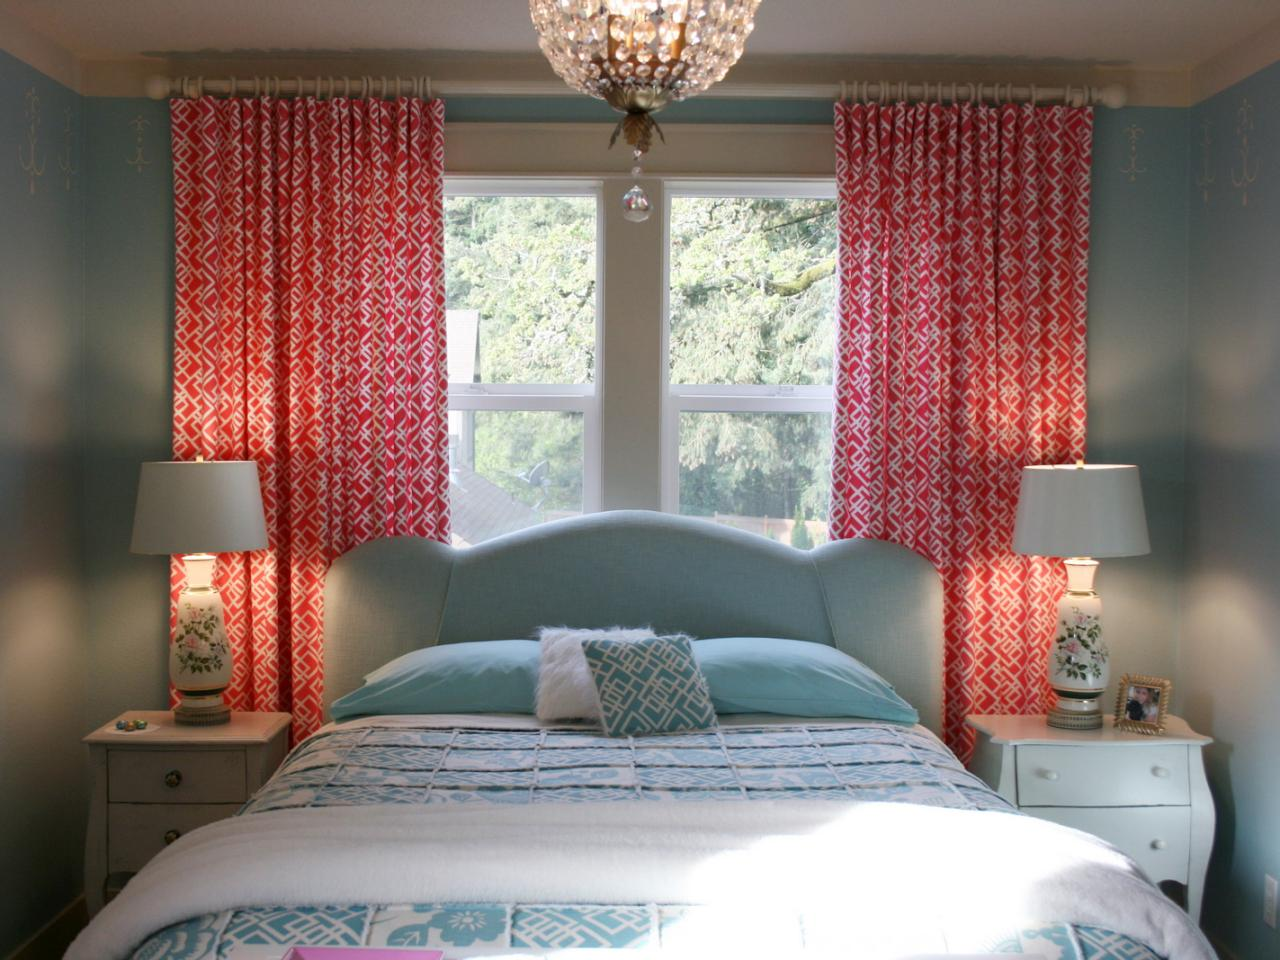 Bedroom Curtain Ideas: What to Consider before Attaching Bedroom ...